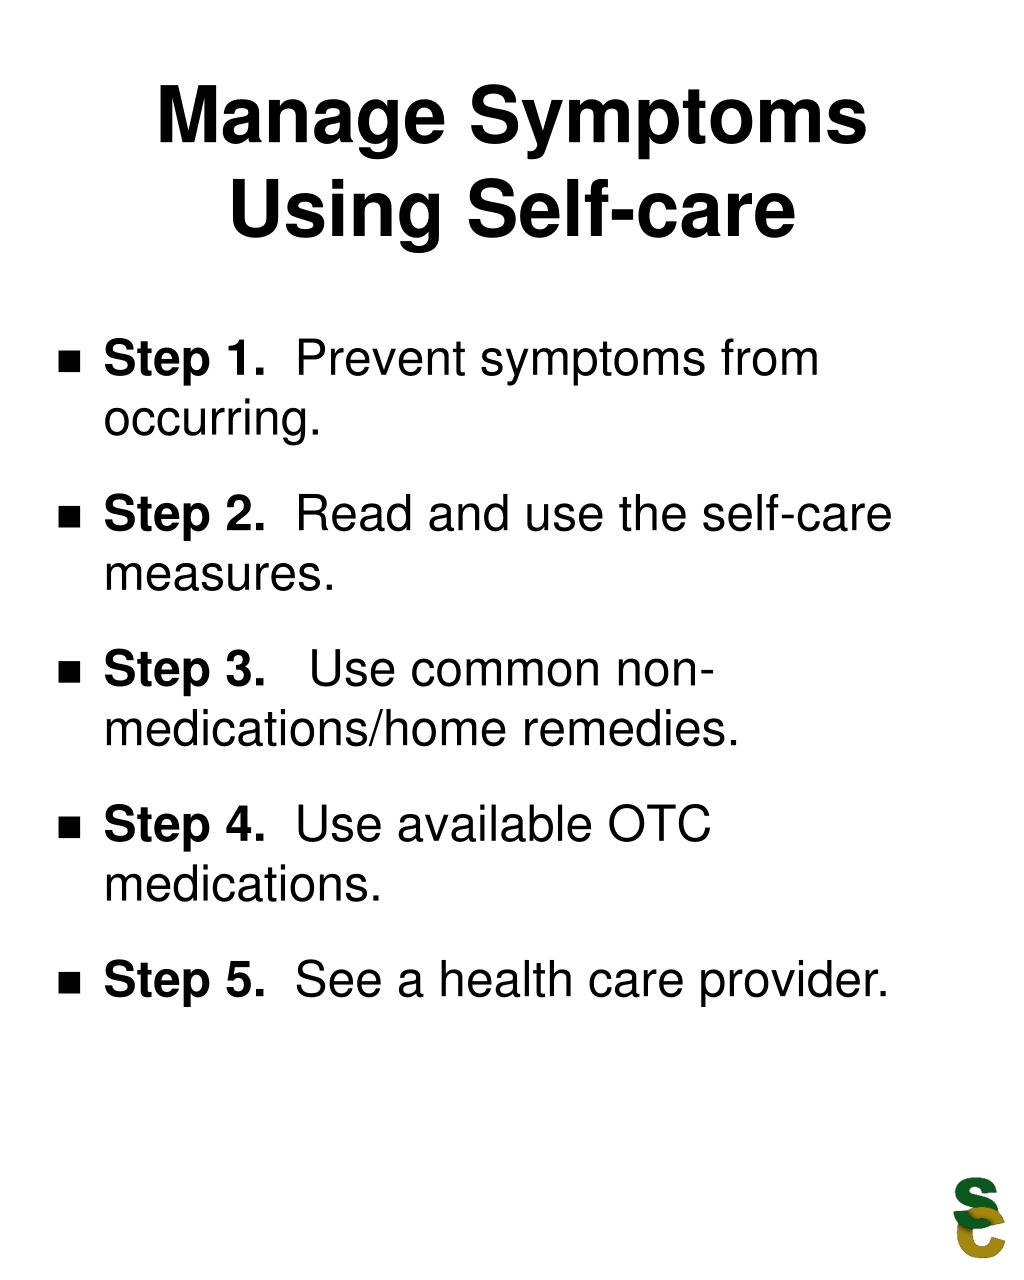 Manage Symptoms Using Self-care